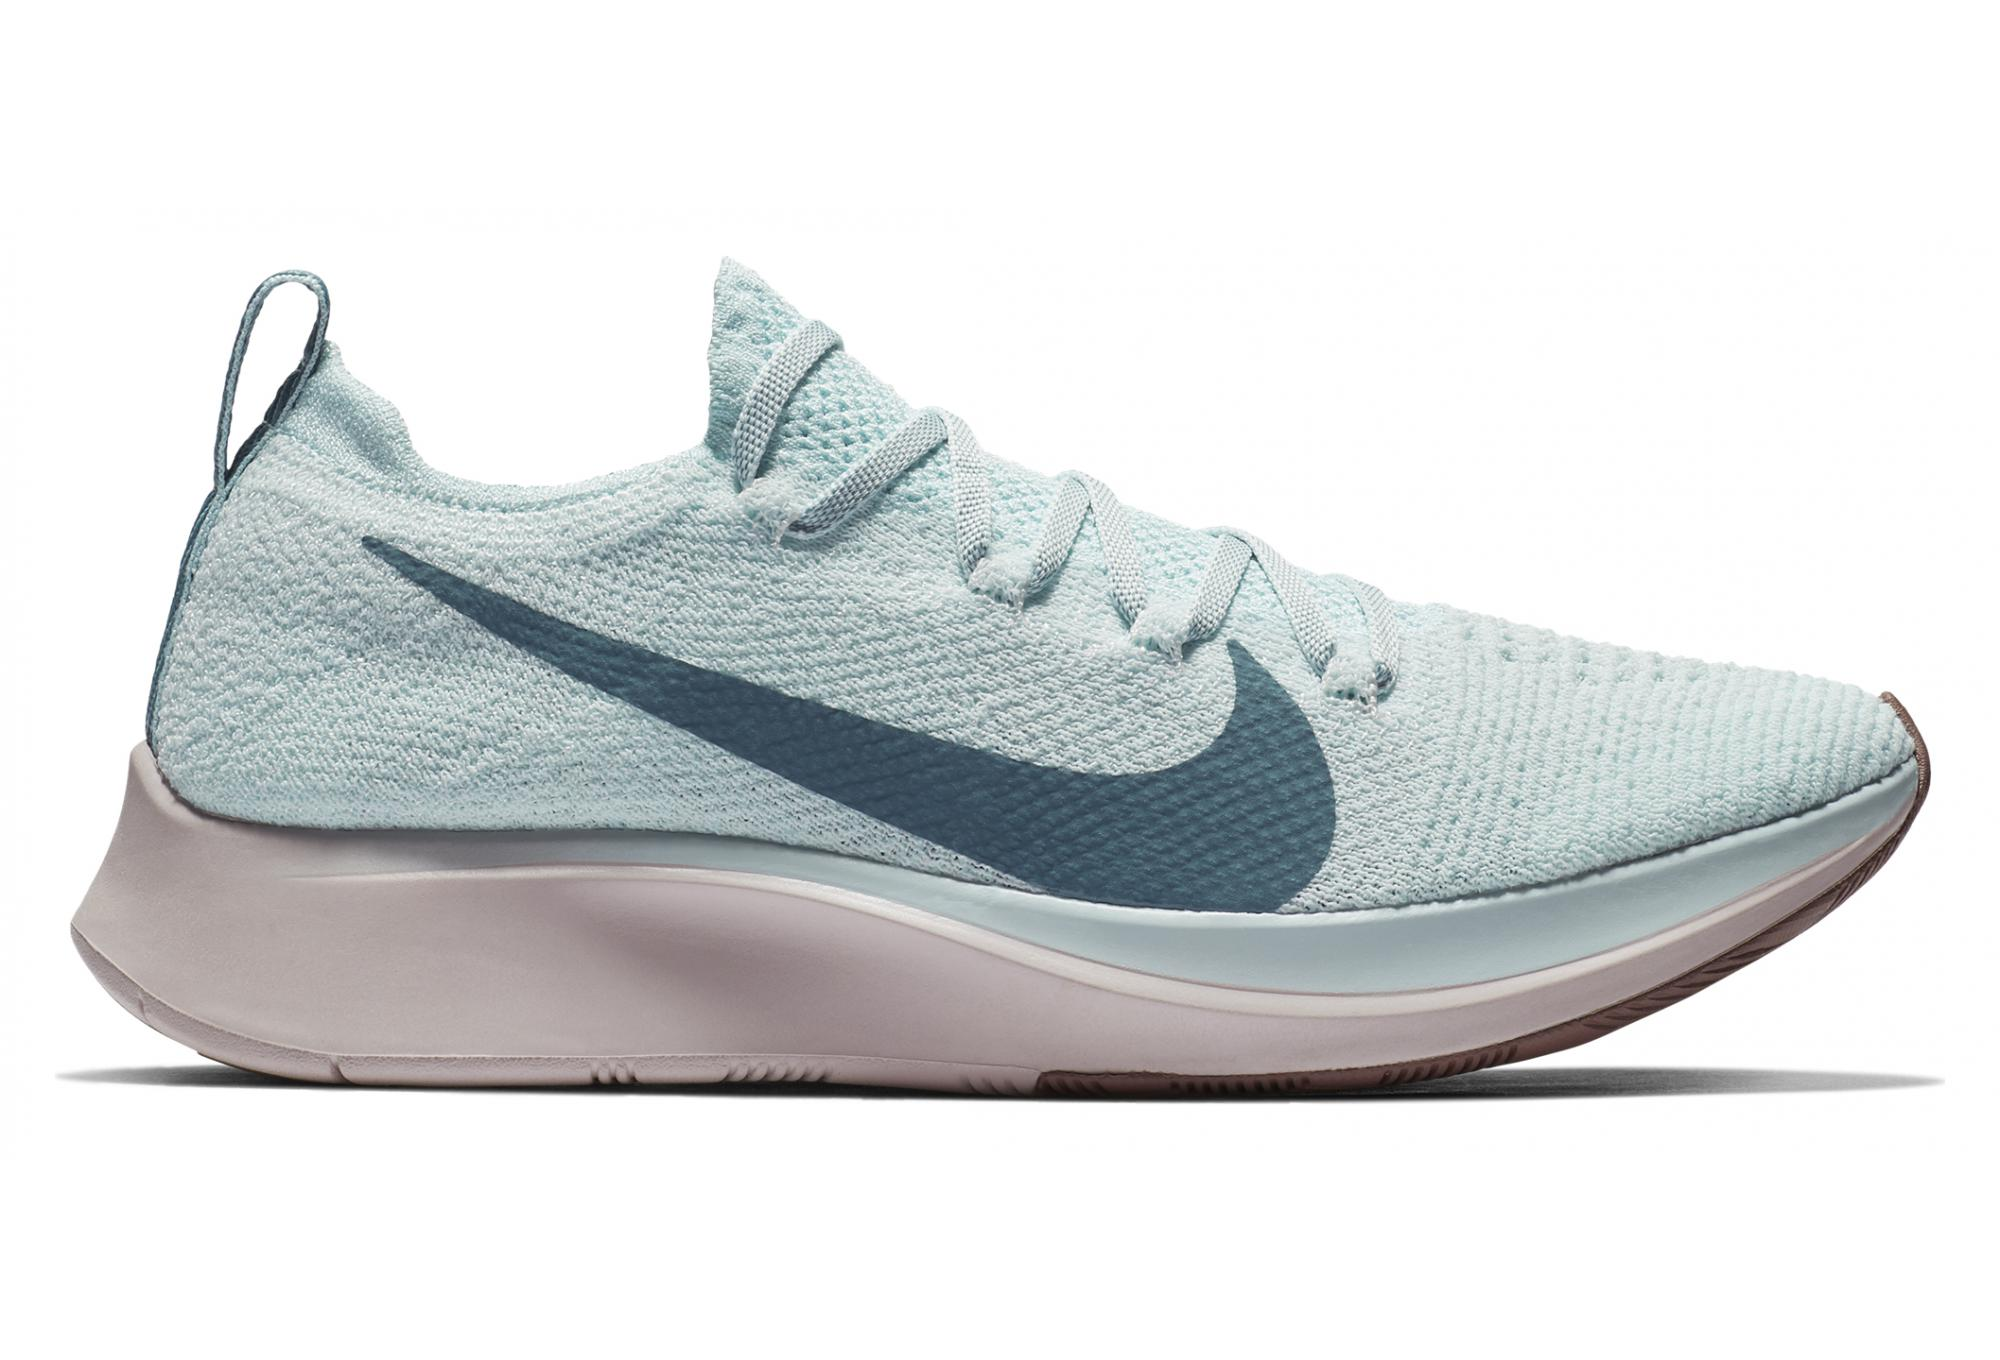 low priced e5658 dca89 Chaussures de Running Femme Nike Zoom Fly Flyknit Bleu